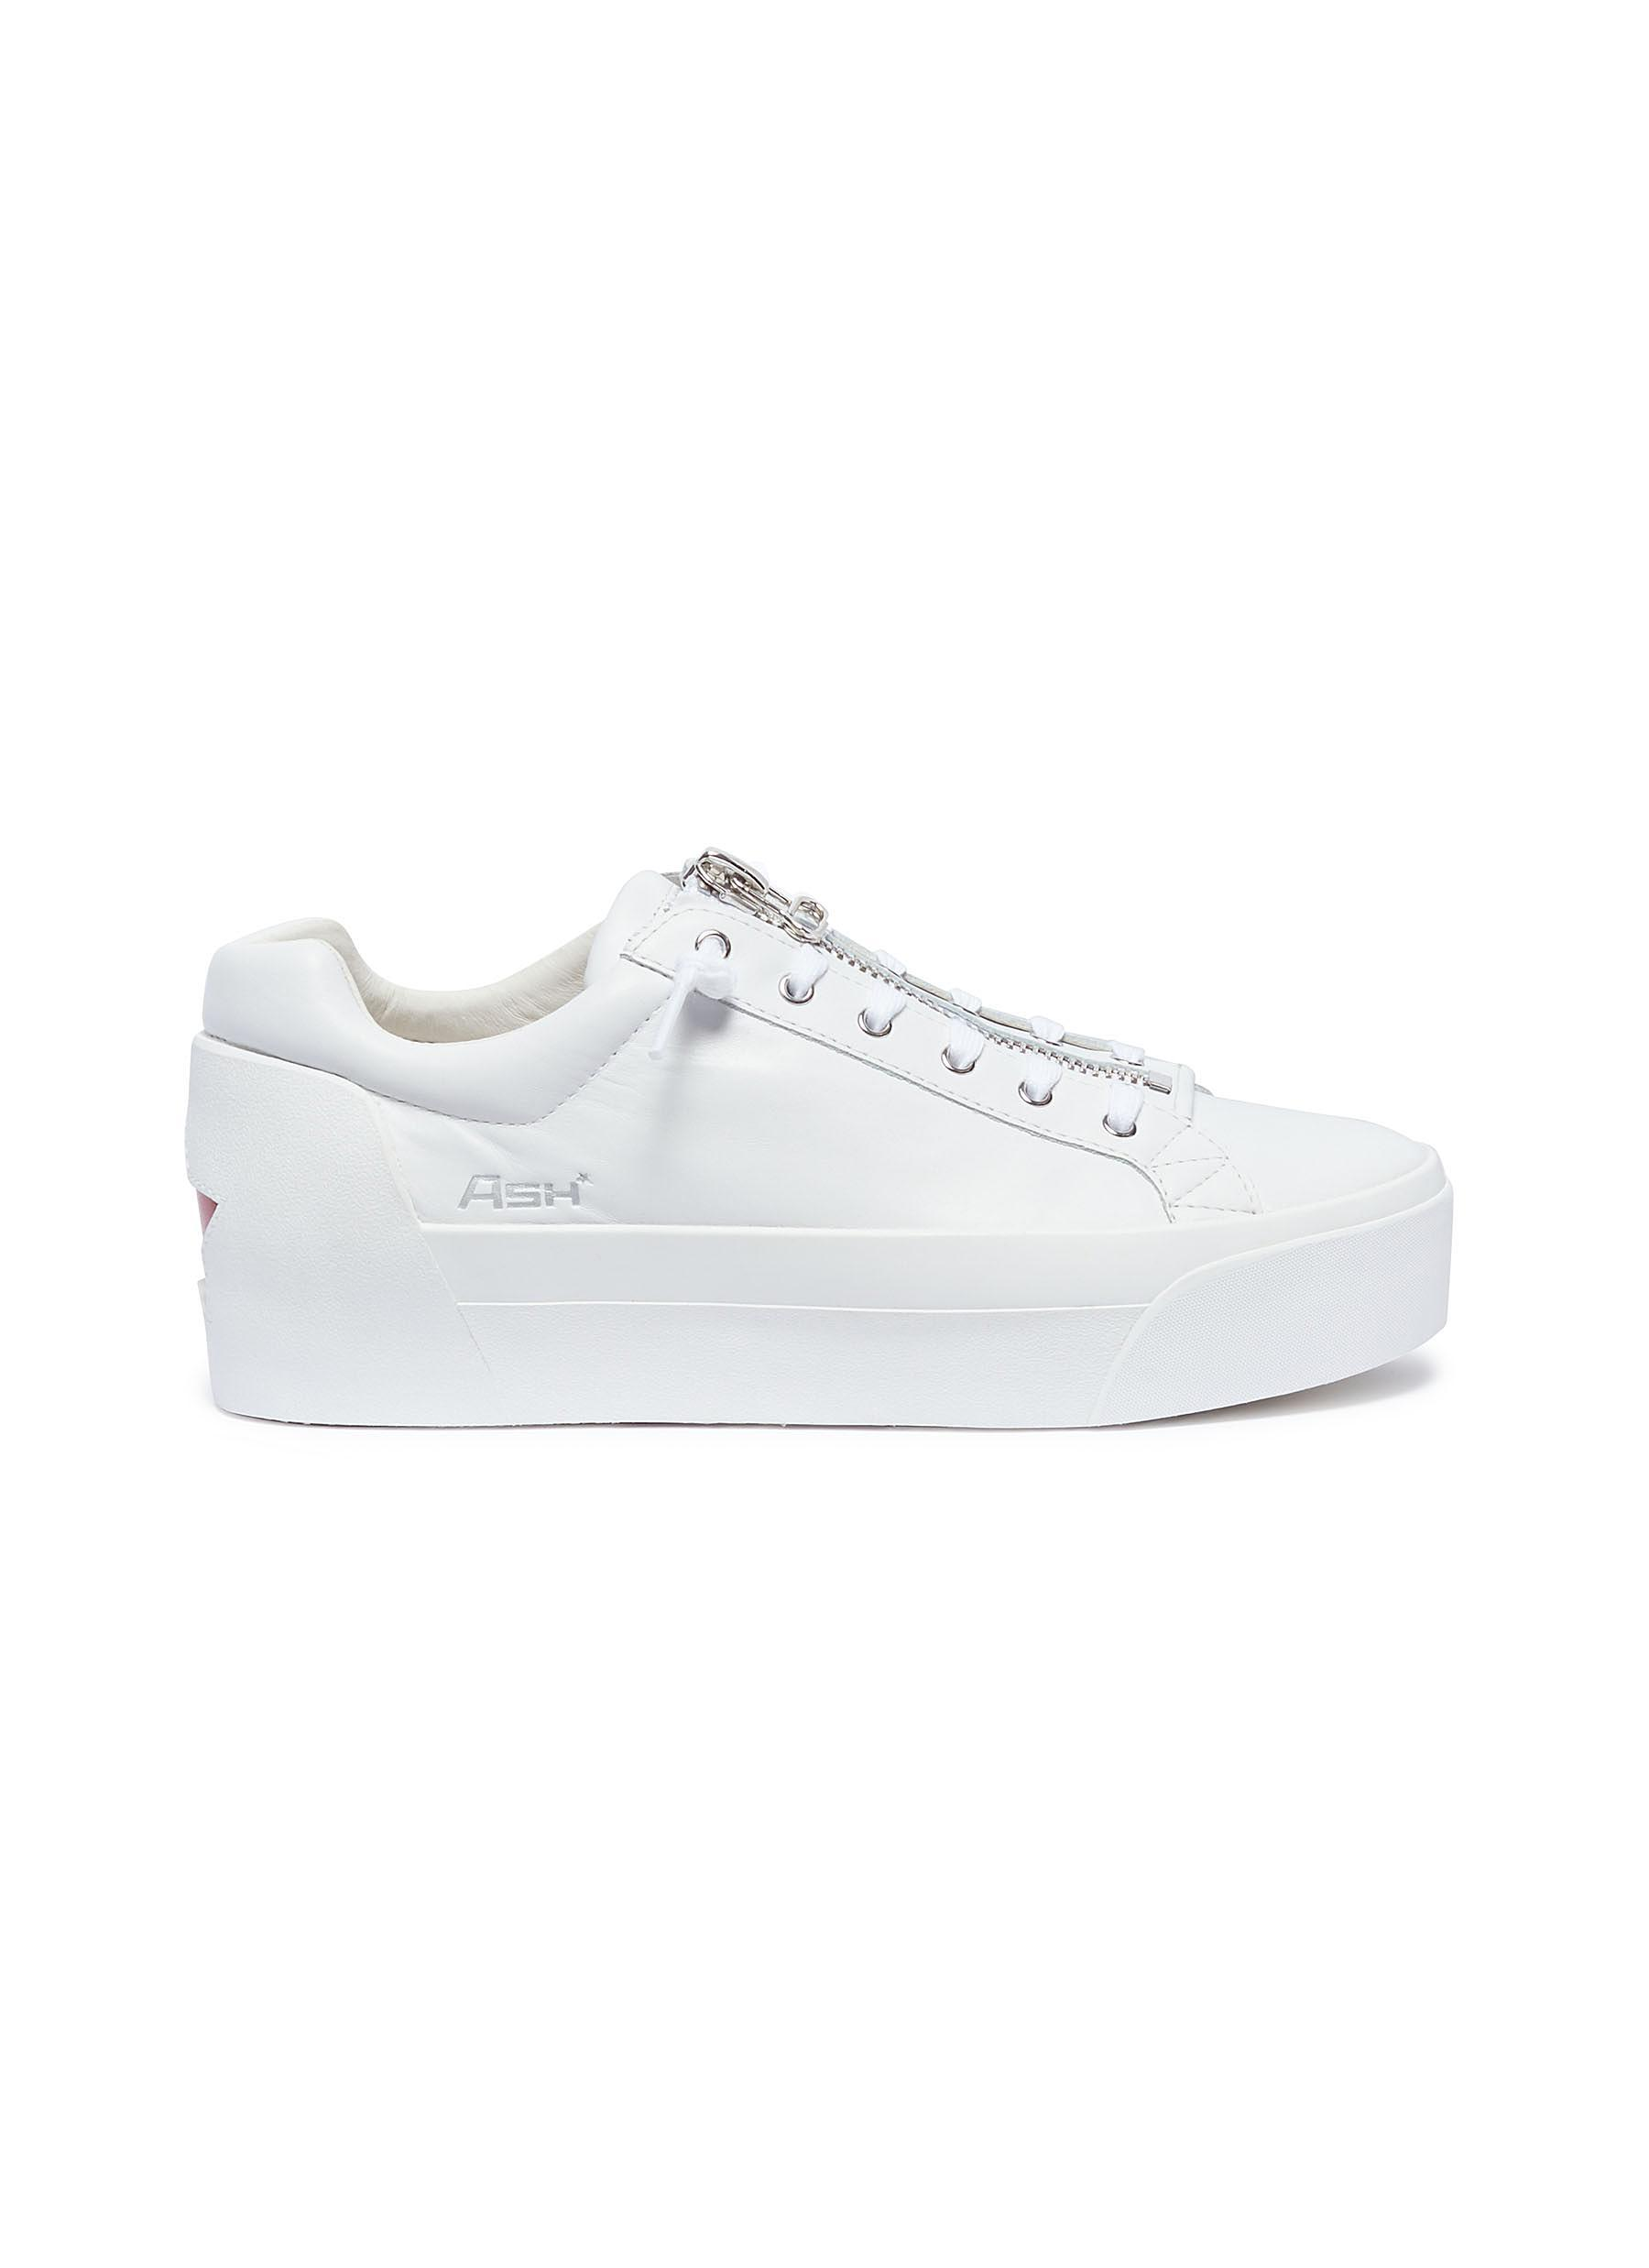 7d7fe77c9092 Ash  buzz  Zip Leather Platform Sneakers in White for Men - Lyst